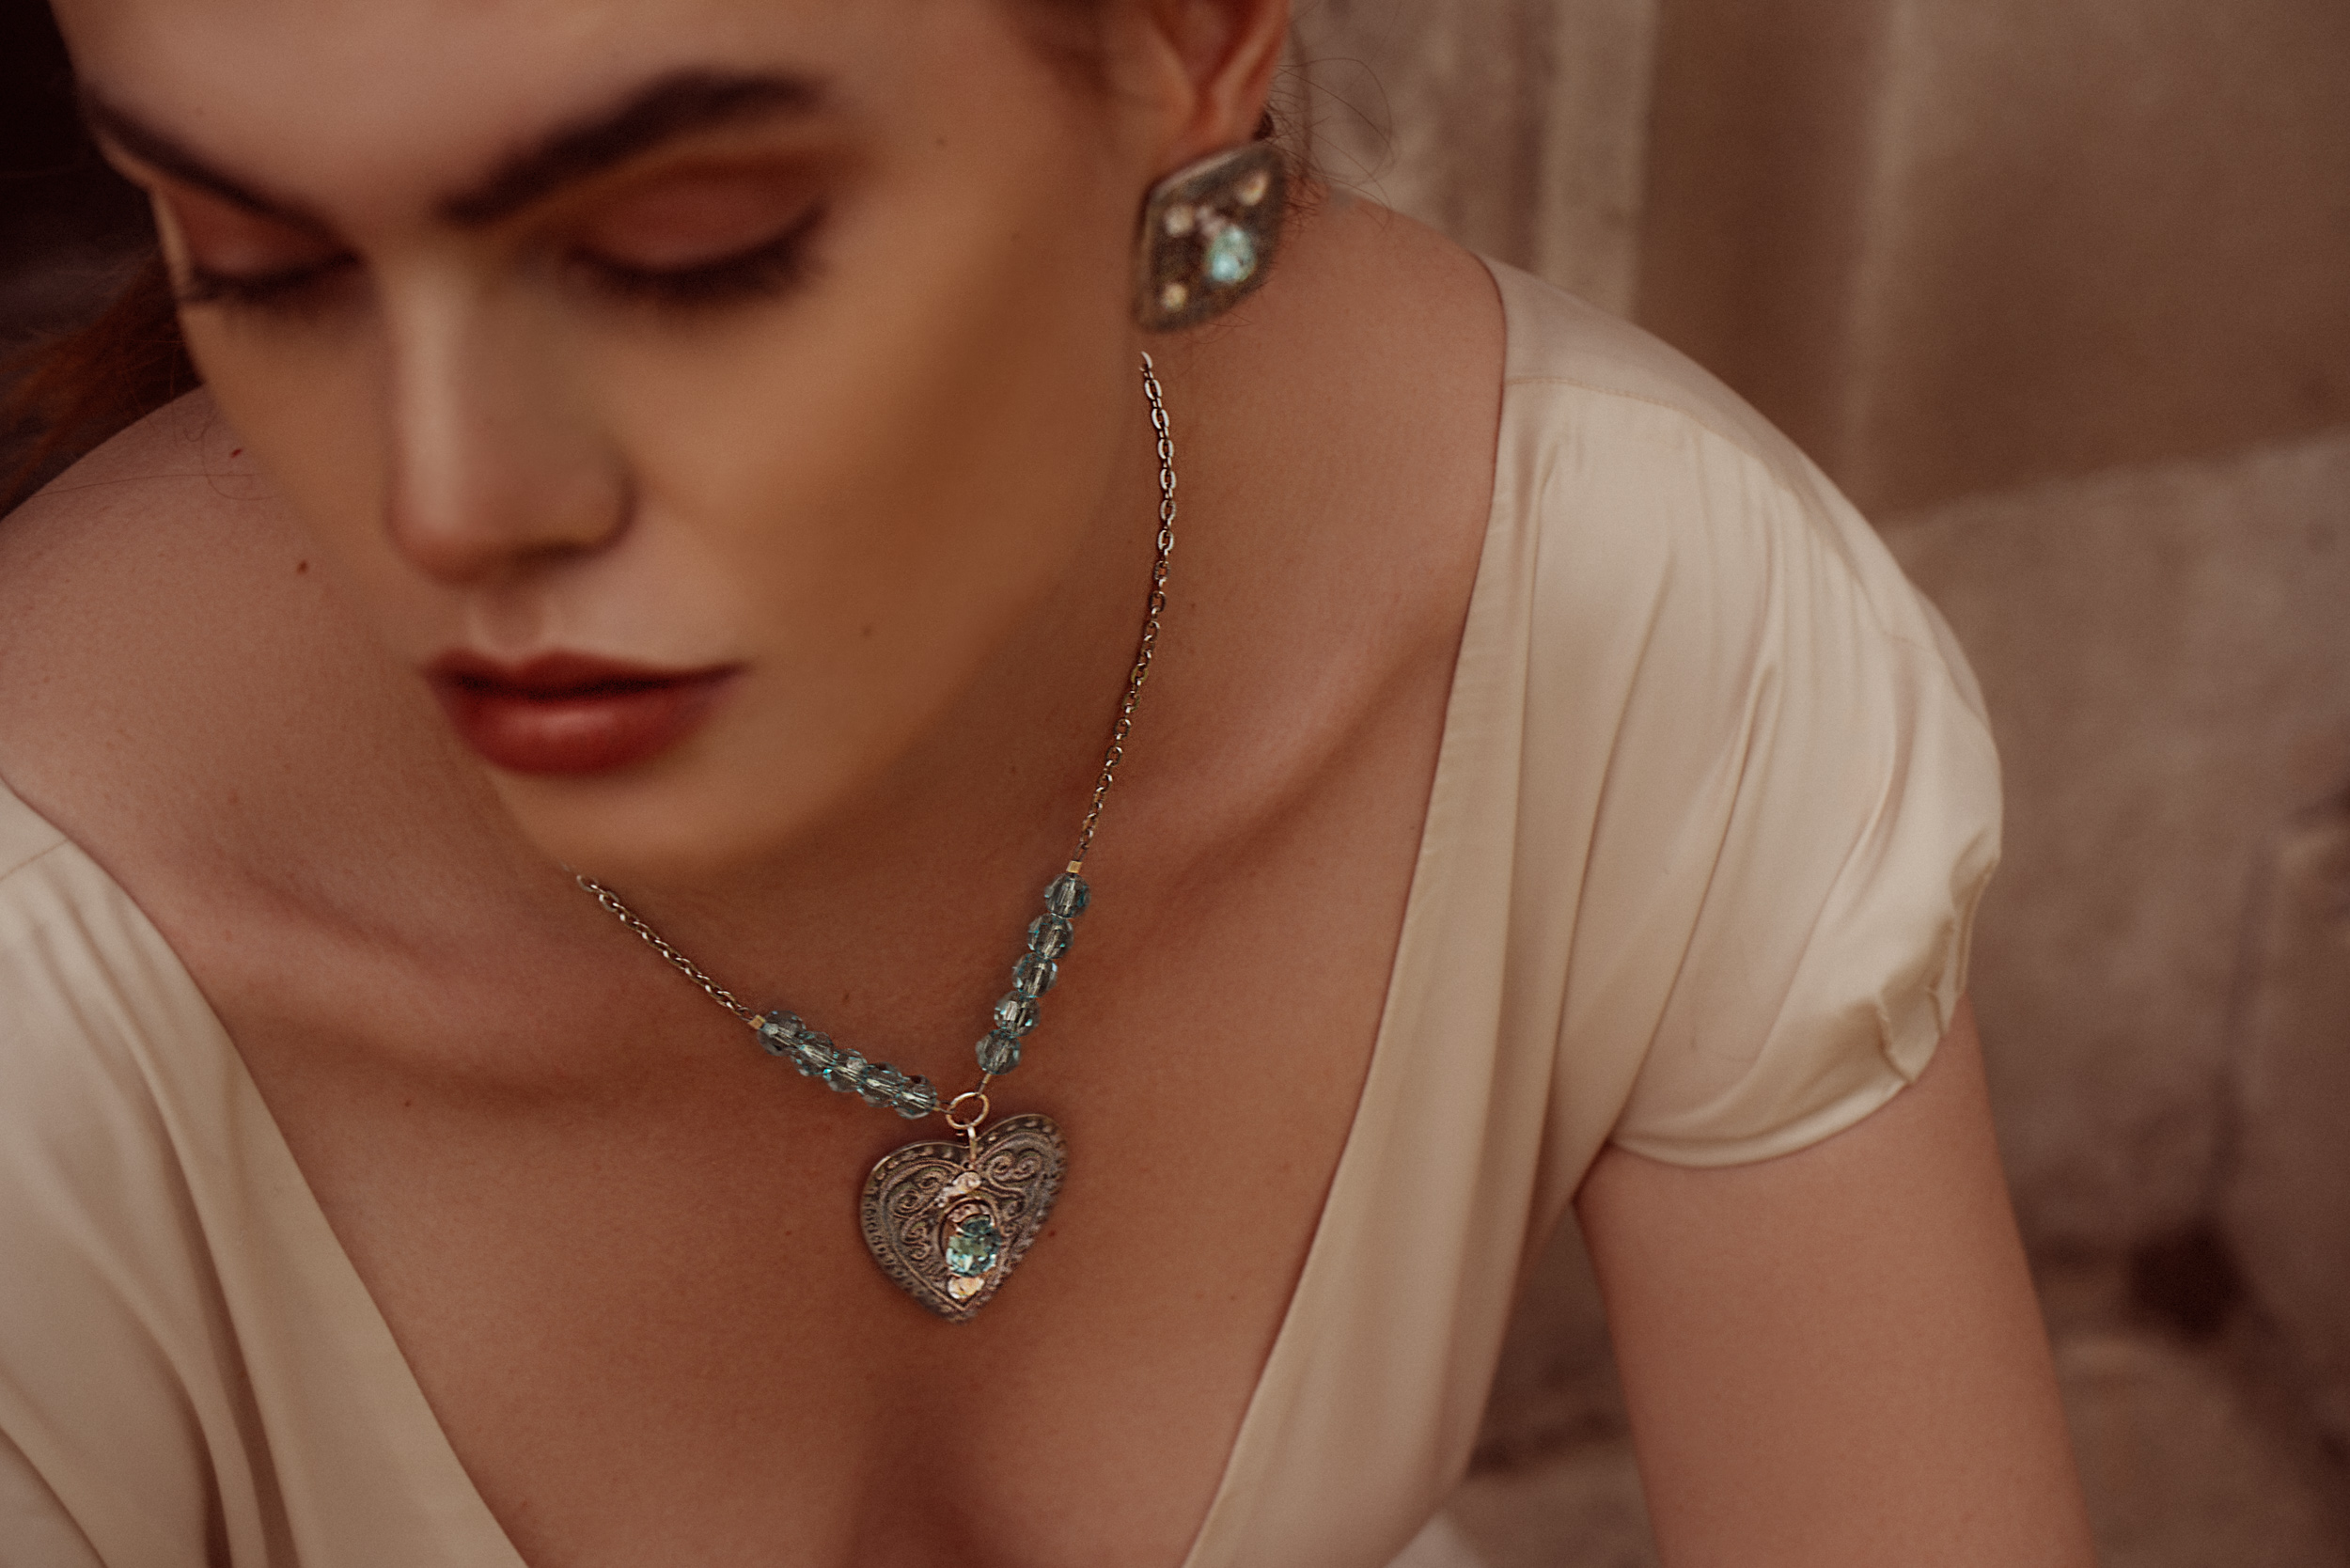 GILL-CLEMENT-MUSE-COLLECTION-JEWELLERY-SHOP-ONLINE-LOOK-BOOK-11.jpg